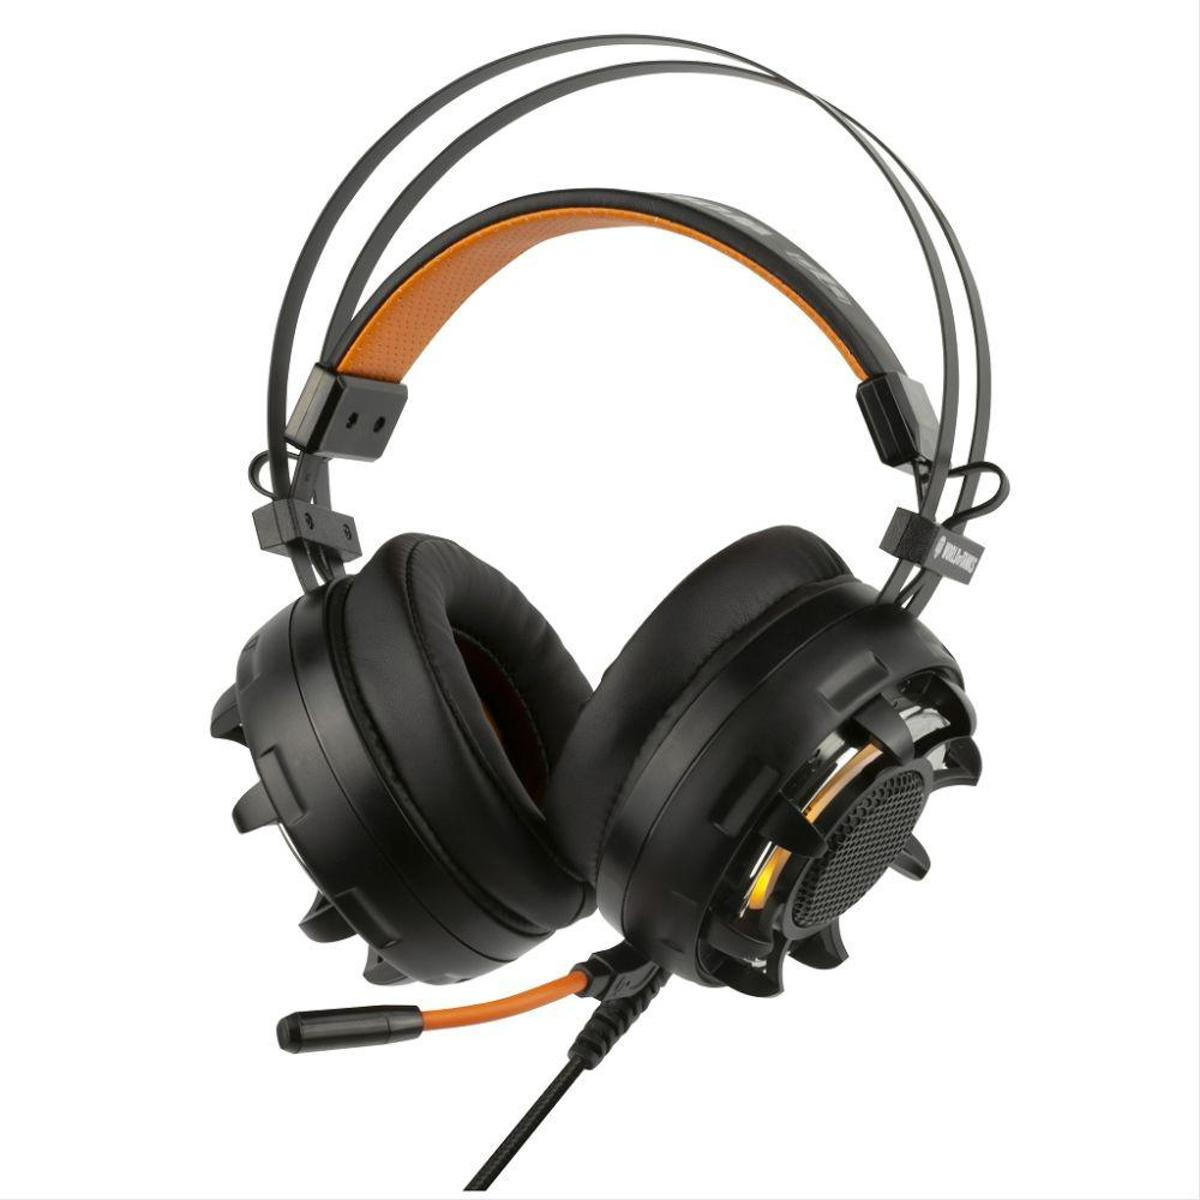 World of Tanks GH-60 7.1 Gaming Headset met vibratie functie